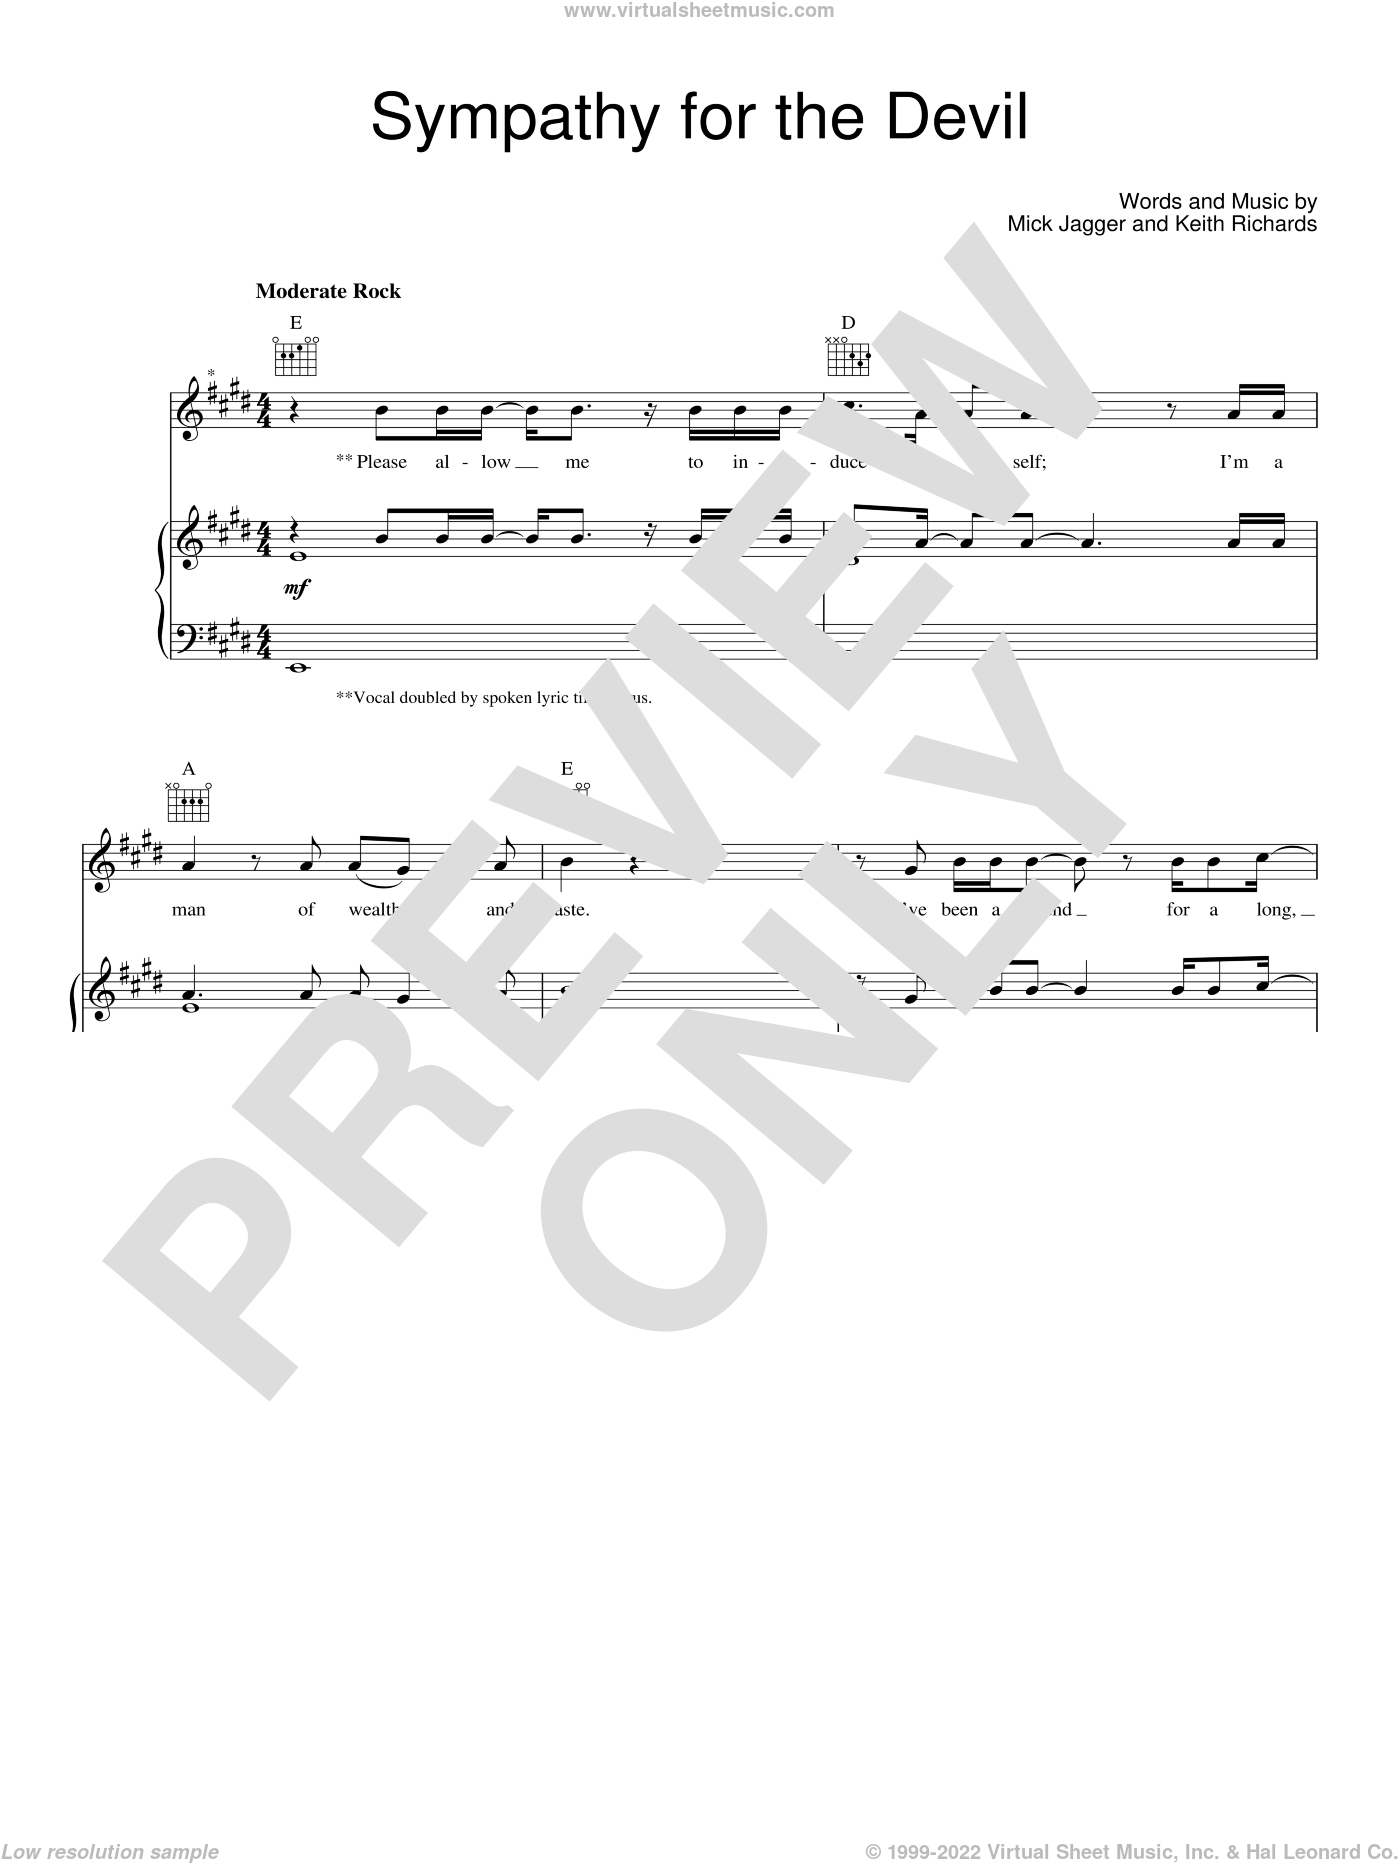 Sympathy For The Devil sheet music for voice, piano or guitar by Guns N' Roses, Keith Richards, Mick Jagger and The Rolling Stones, intermediate skill level